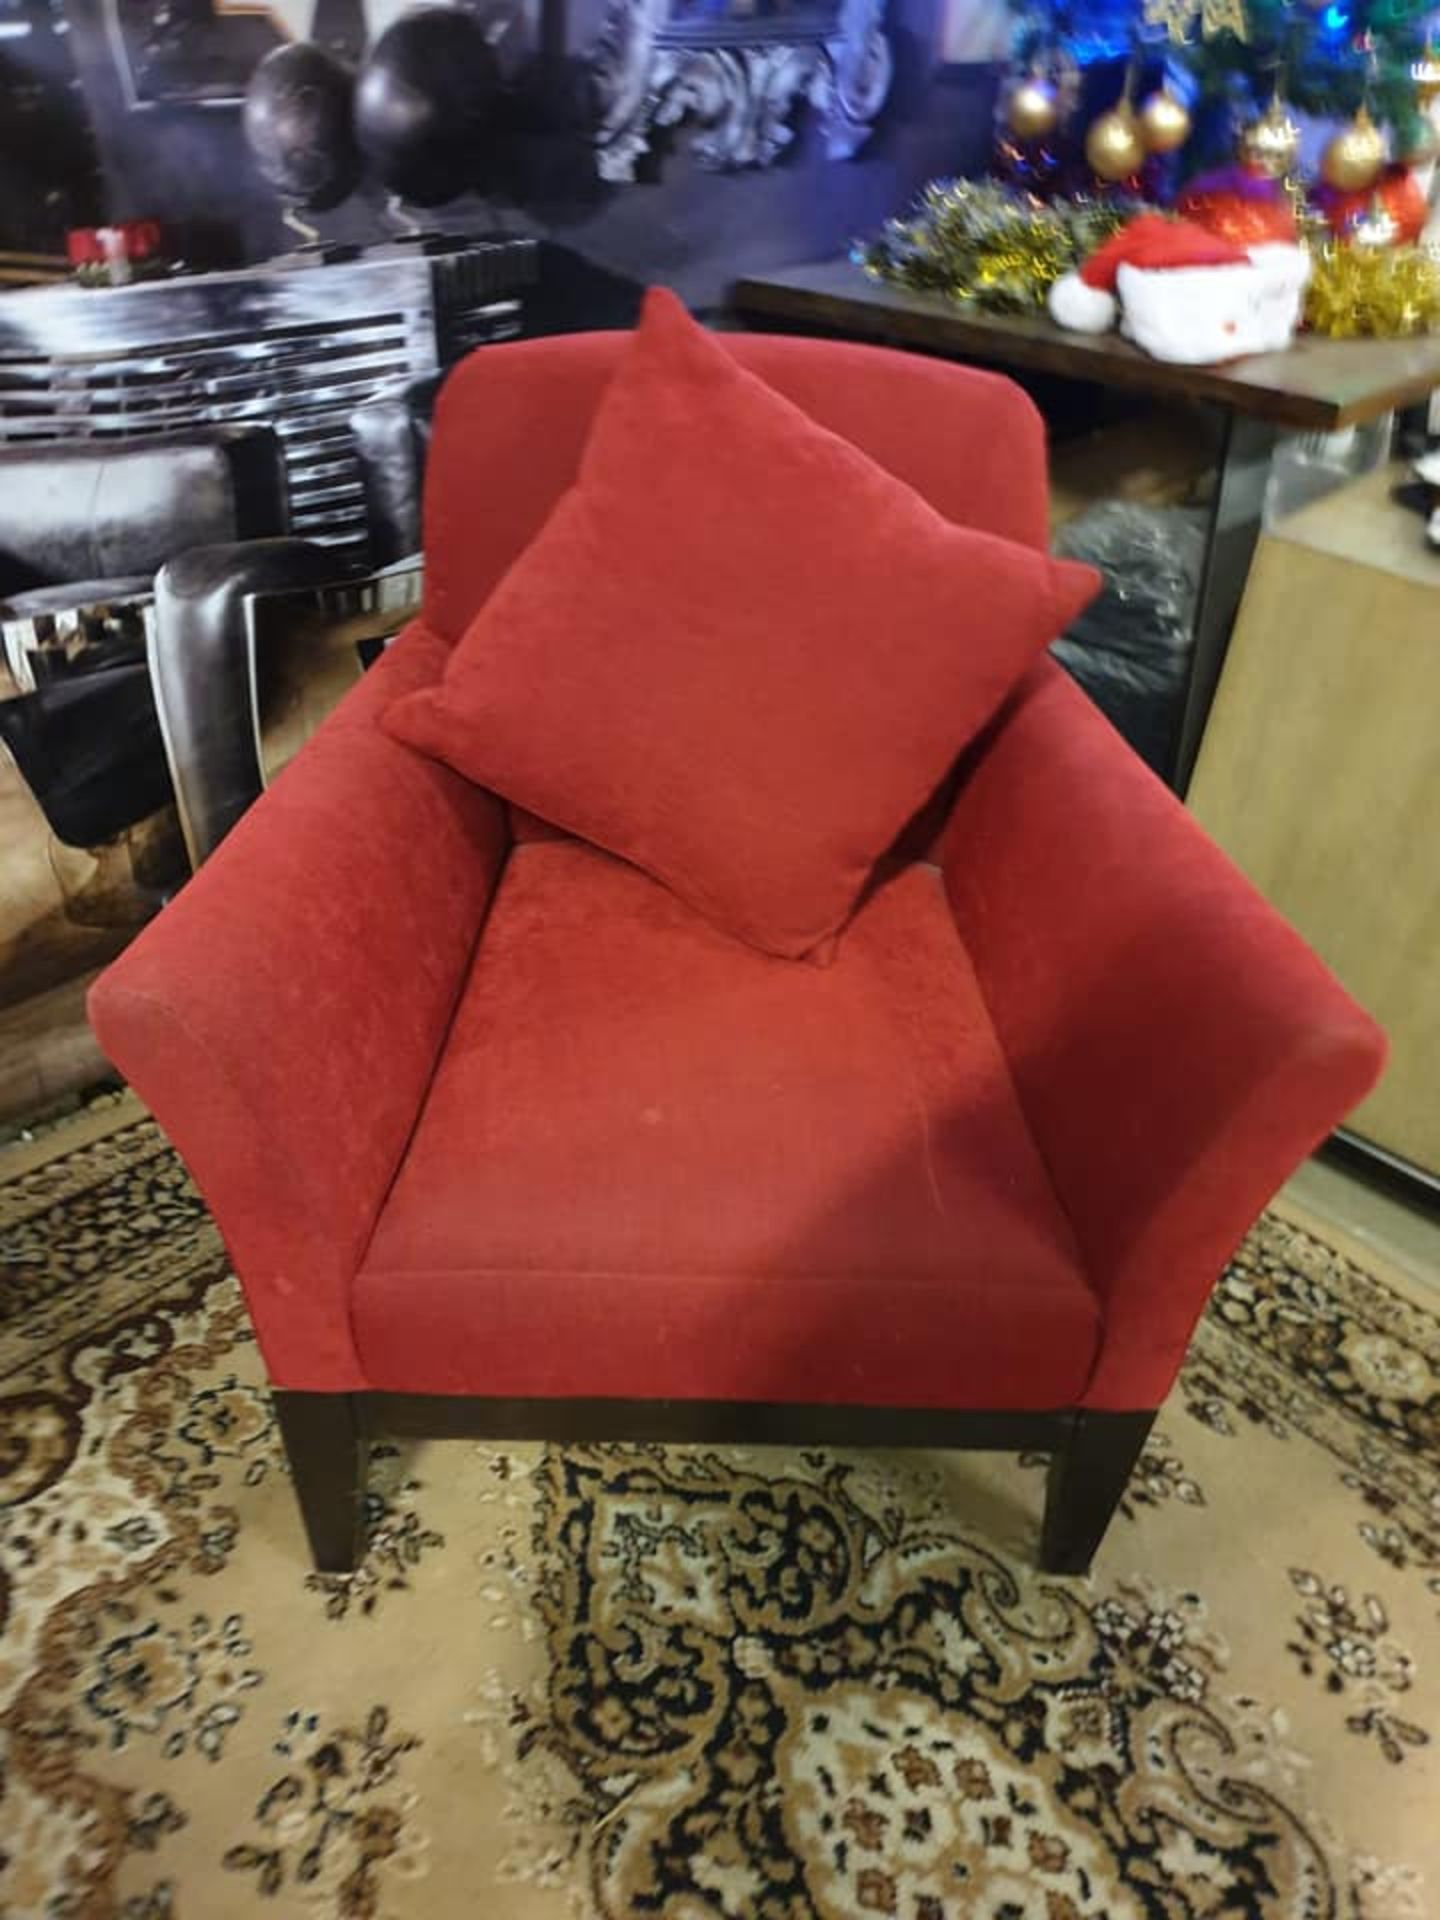 A Pair Of Upholstered Luxury Red Fabric Chairs 80 X 57 X 90cm - Image 2 of 2